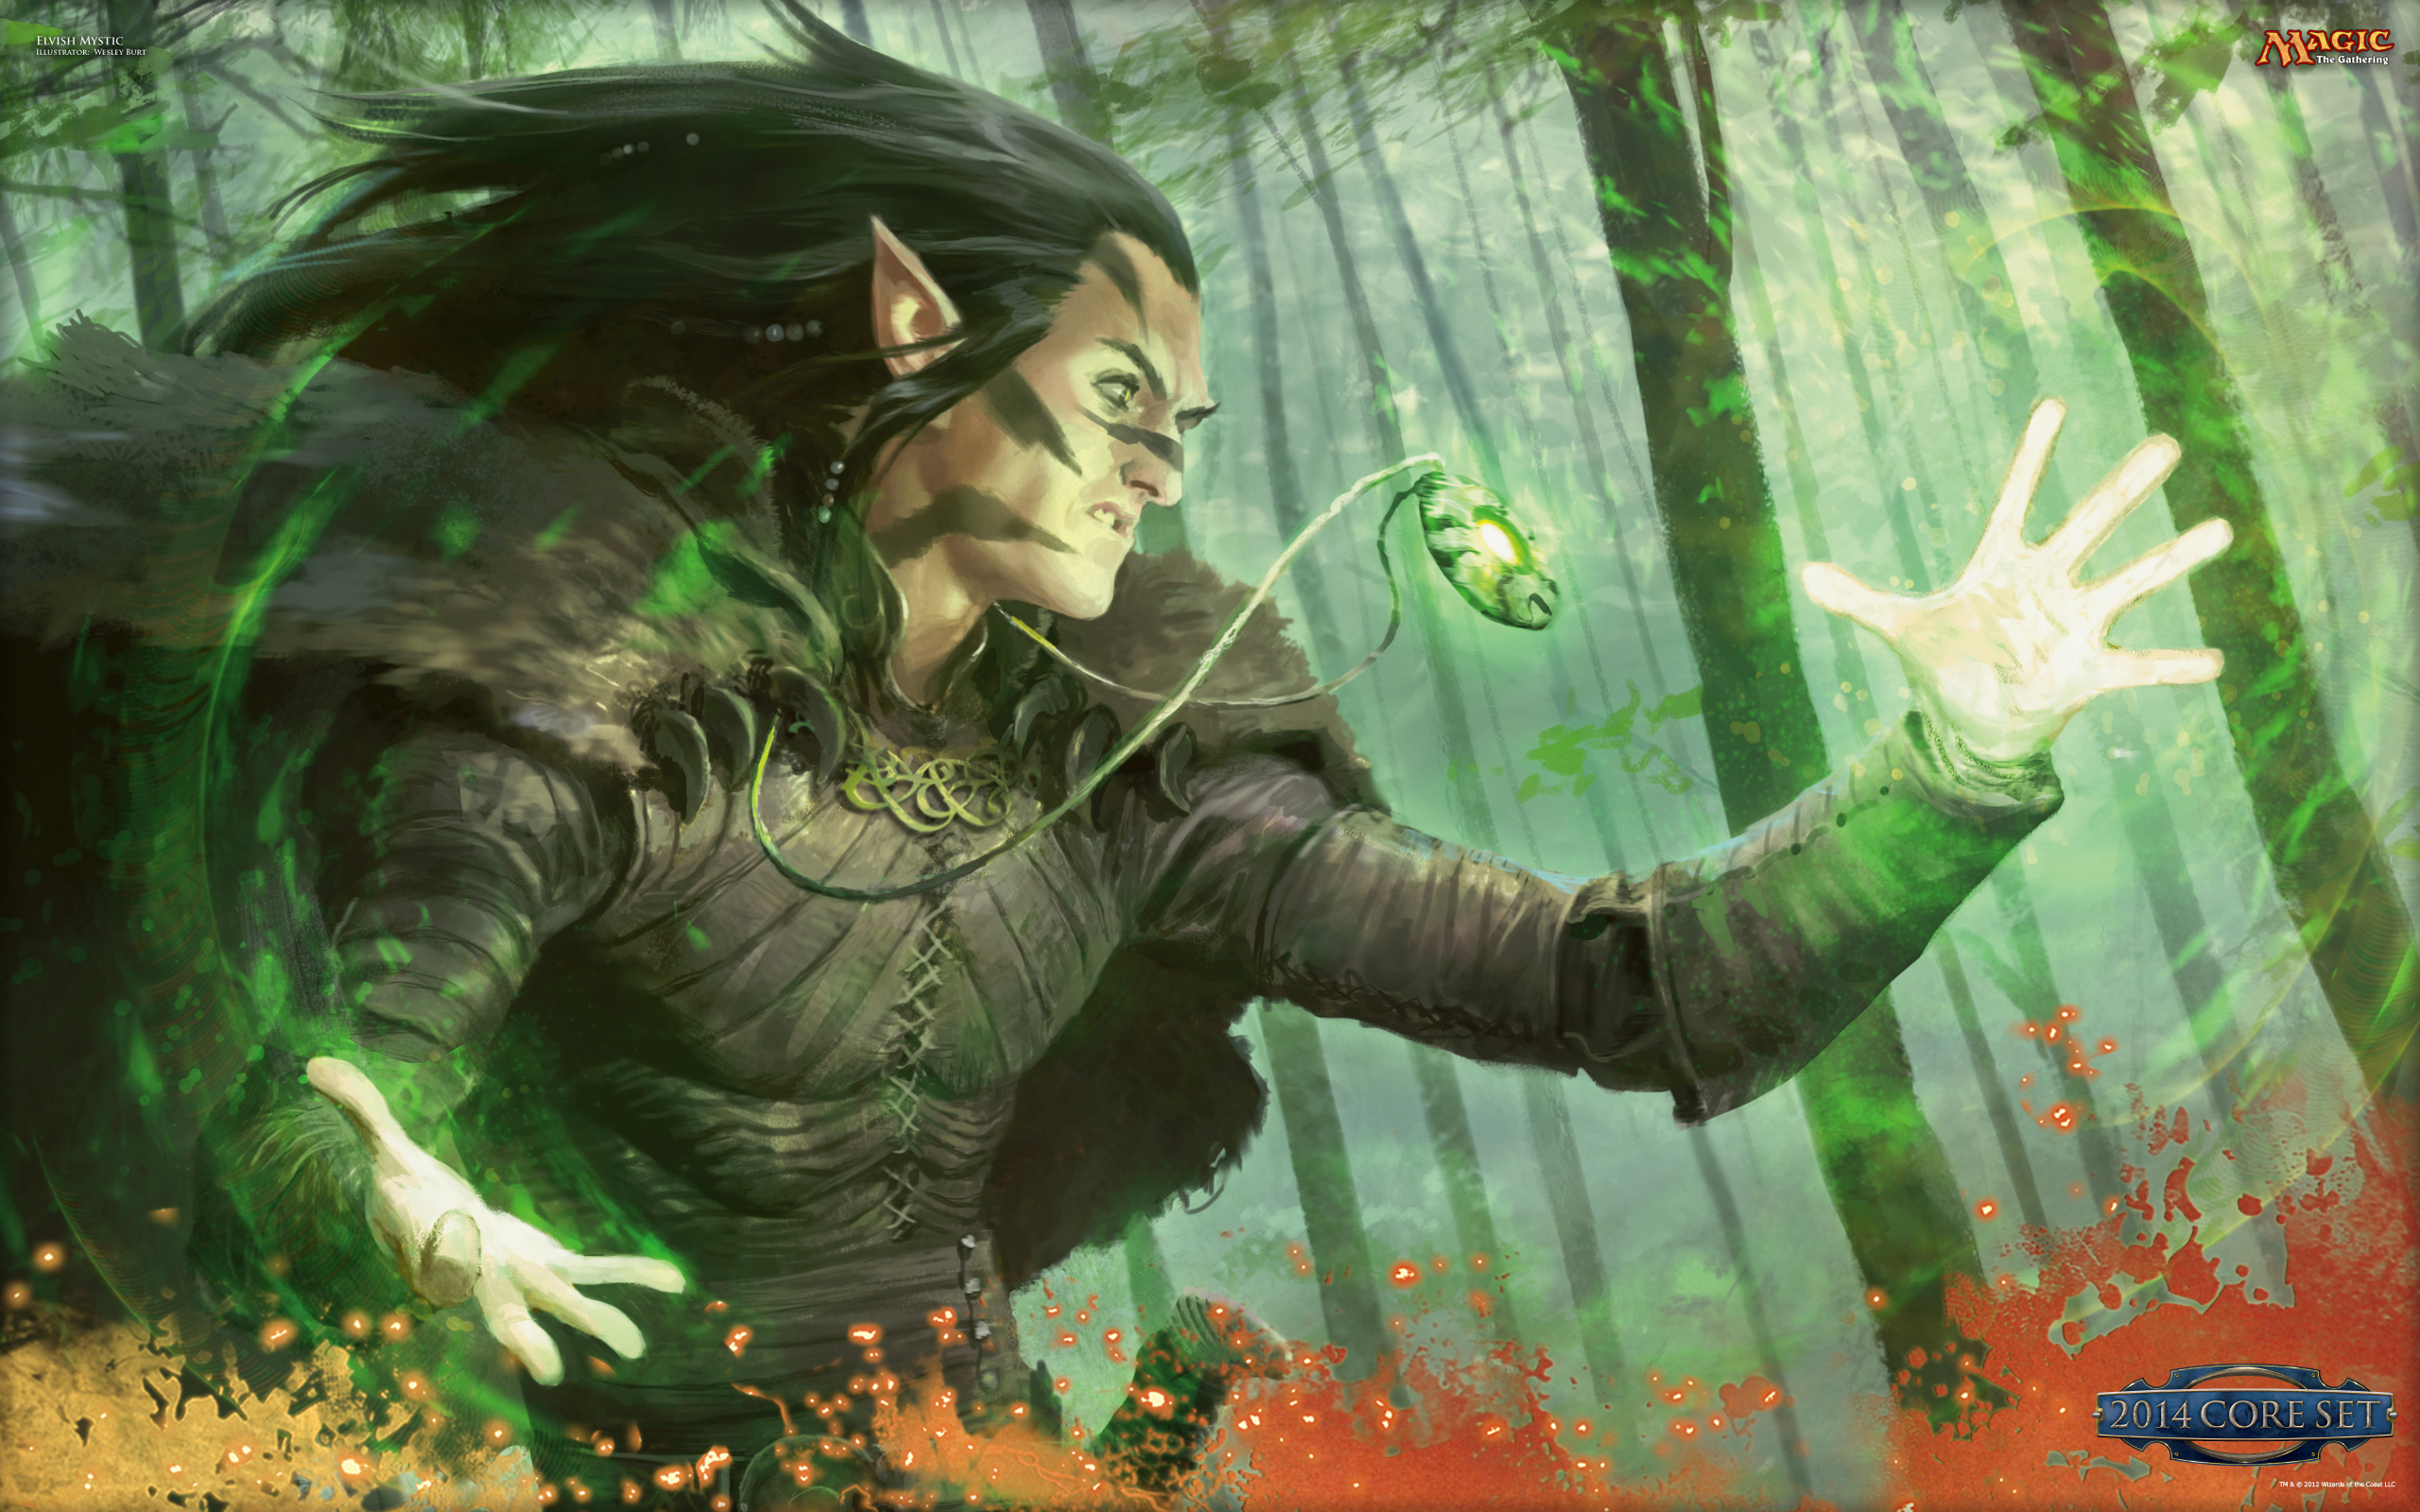 Free Download Wallpaper Of The Week Elvish Mystic Daily Mtg Magic